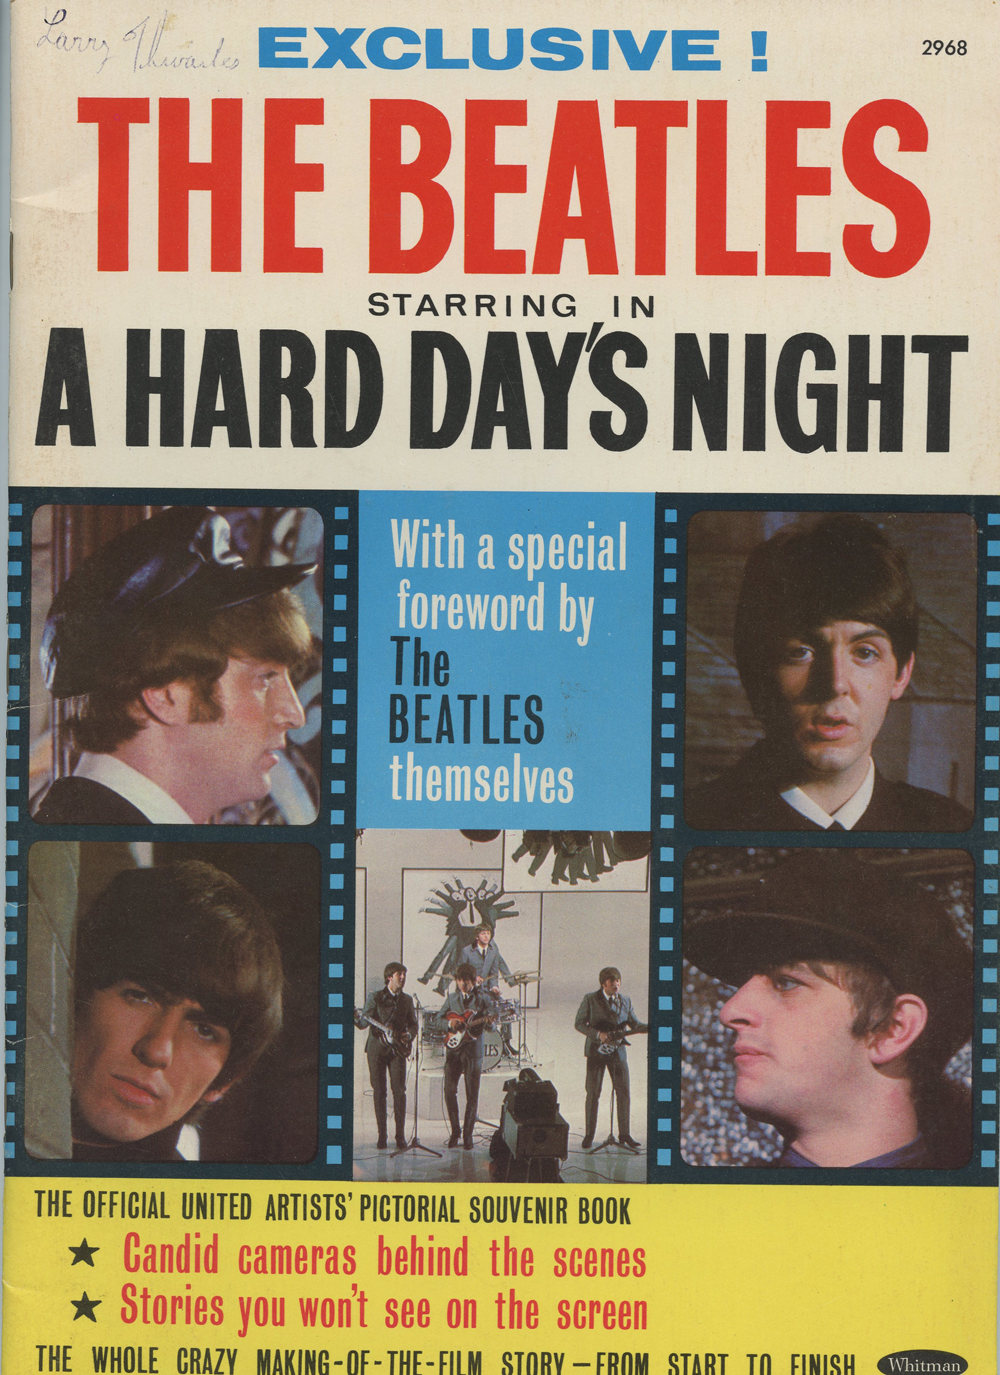 The Beatles Magazine Back Issue 1964 A Hard Day's Night Exclusive!